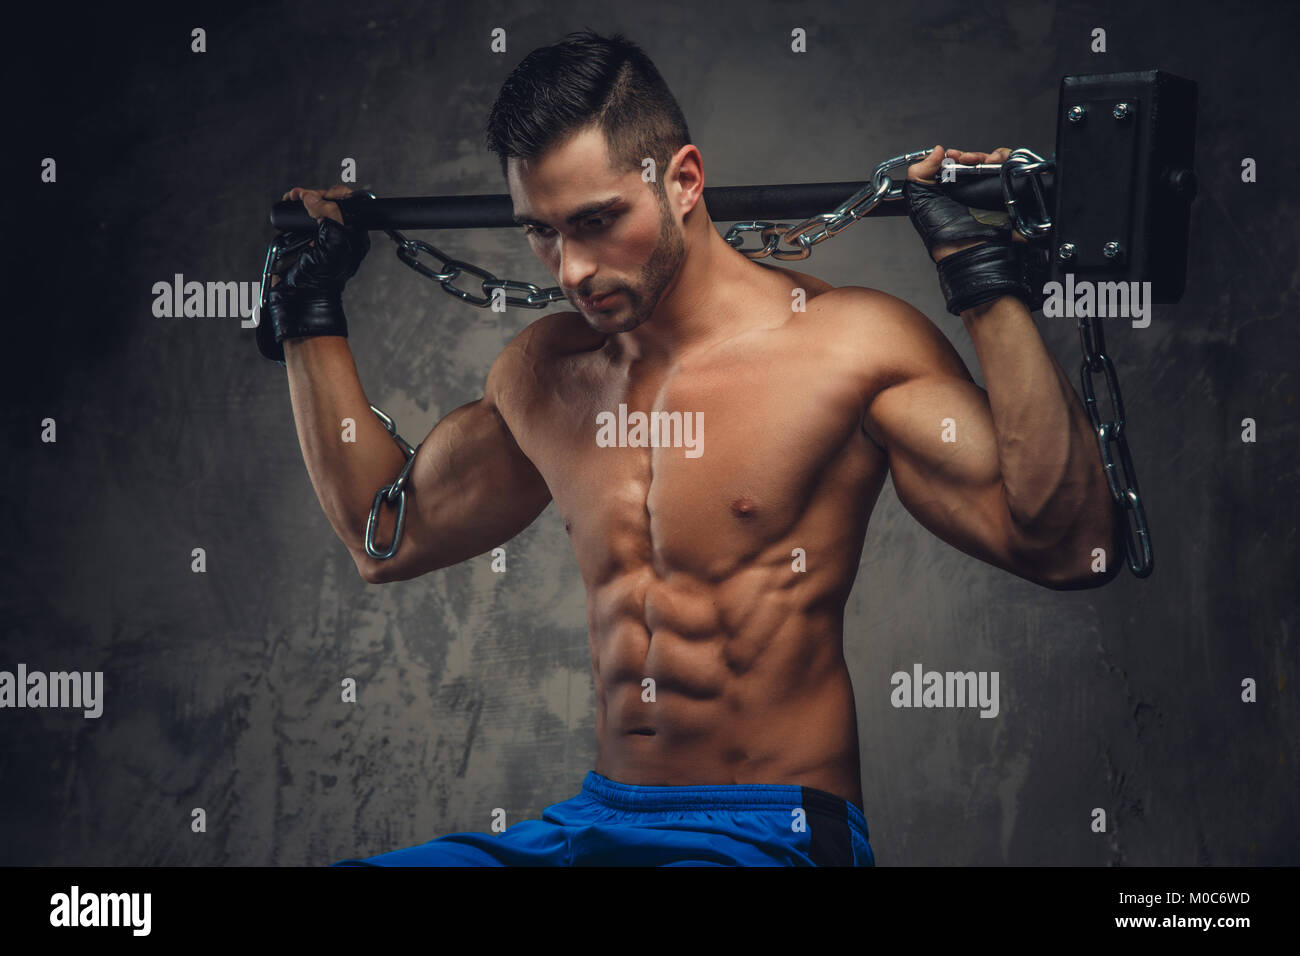 Athletic guy holding a hammer. - Stock Image